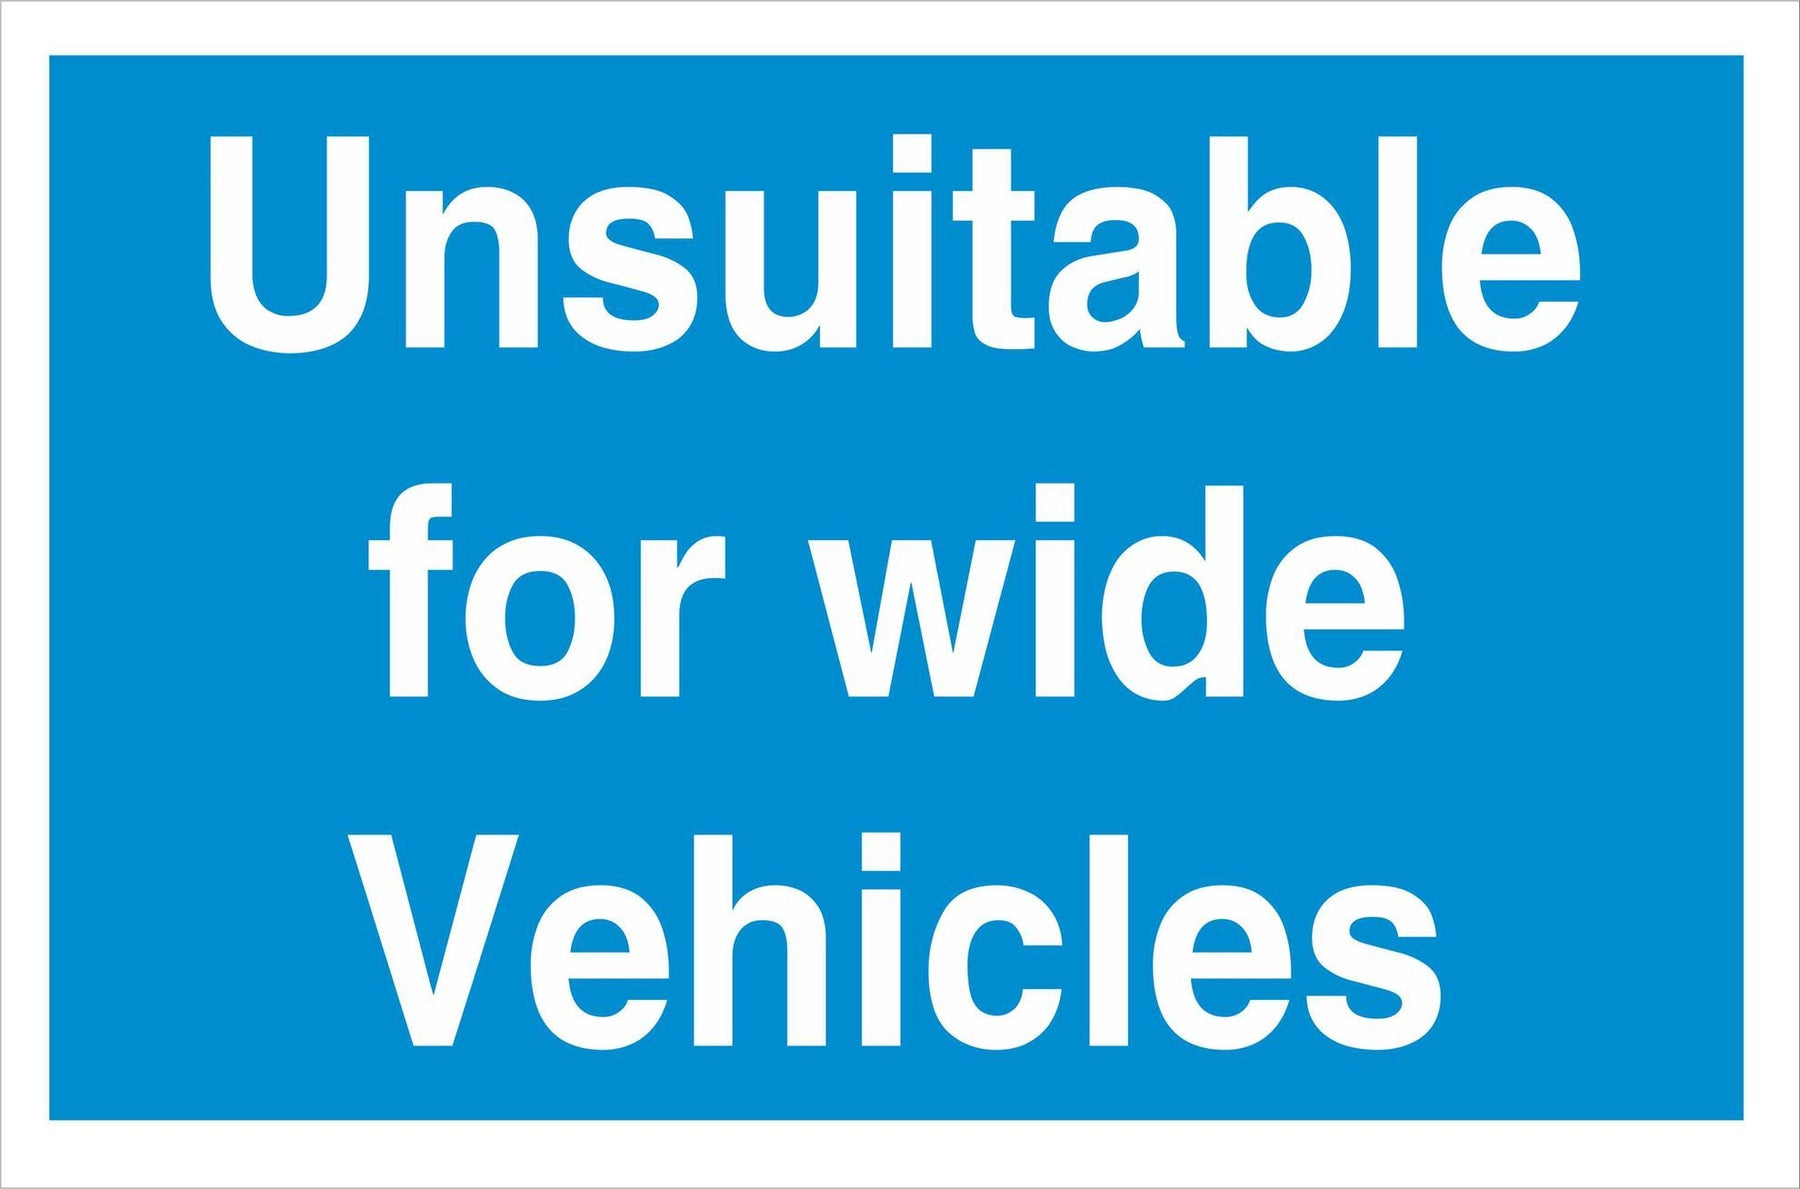 Unsuitable for wide vehicles